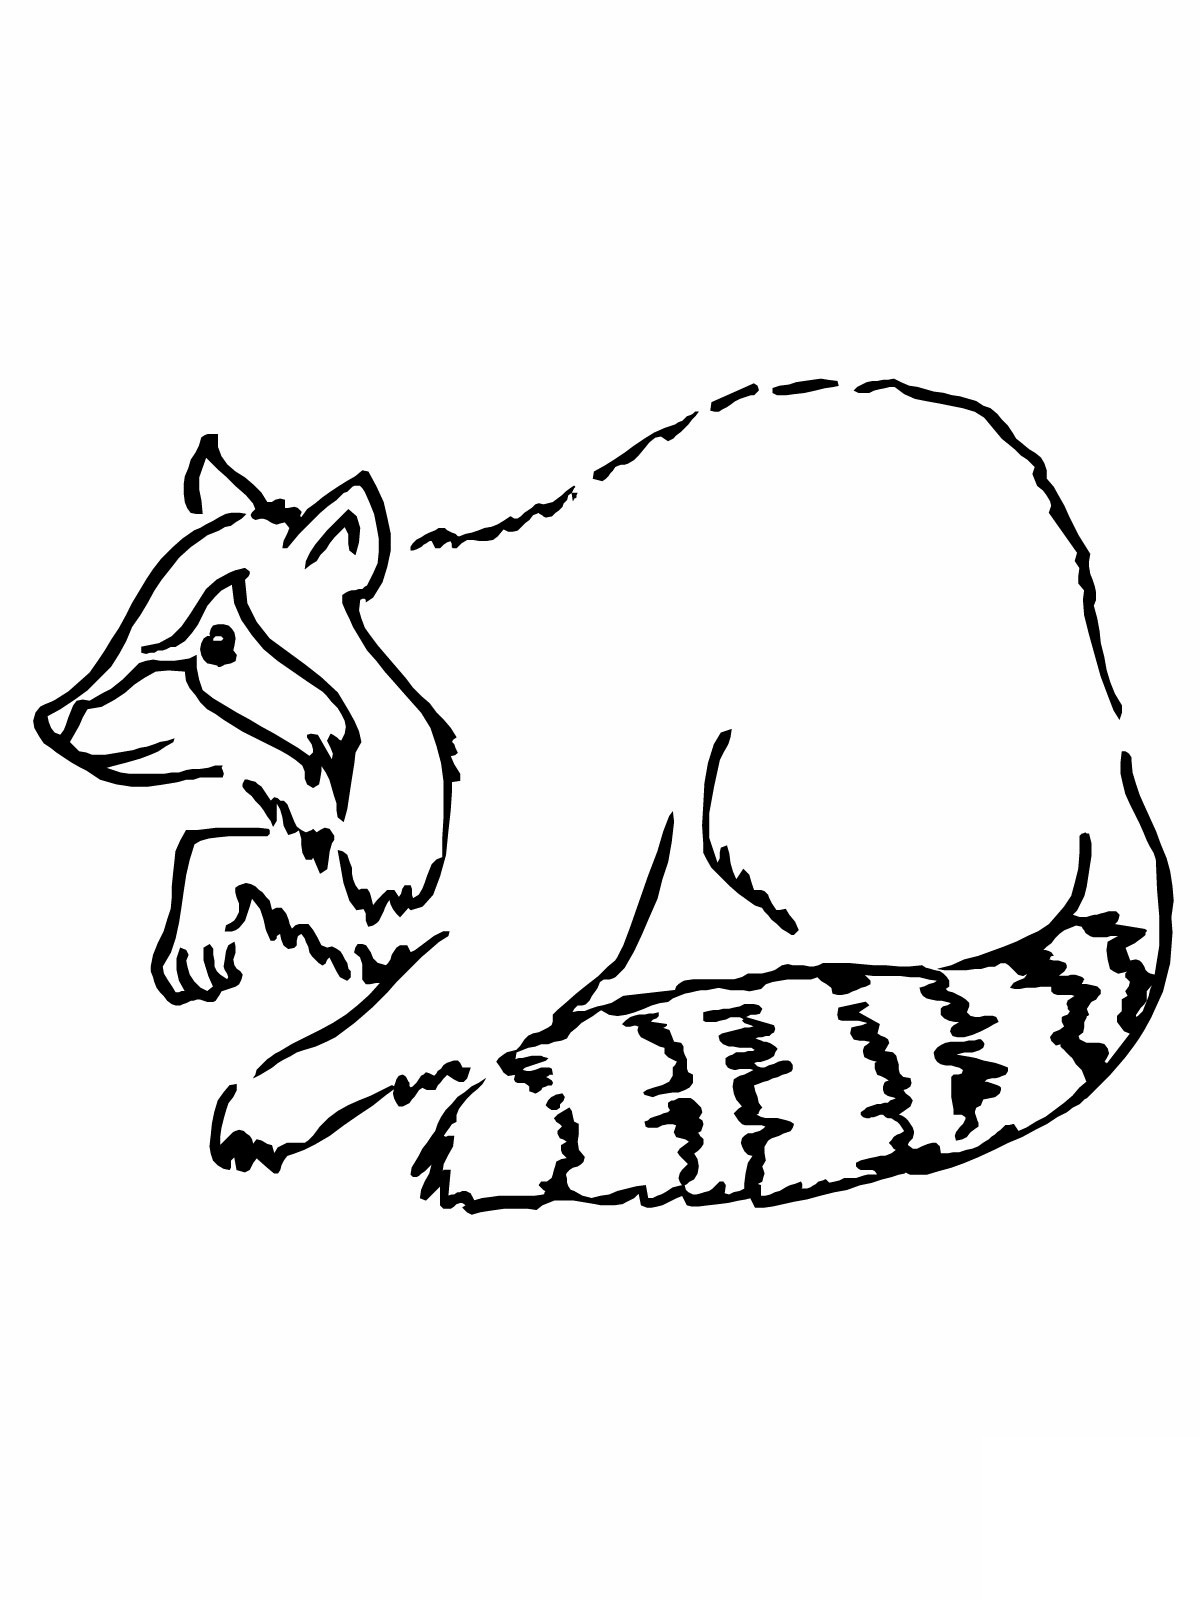 Free Printable Raccoon Coloring